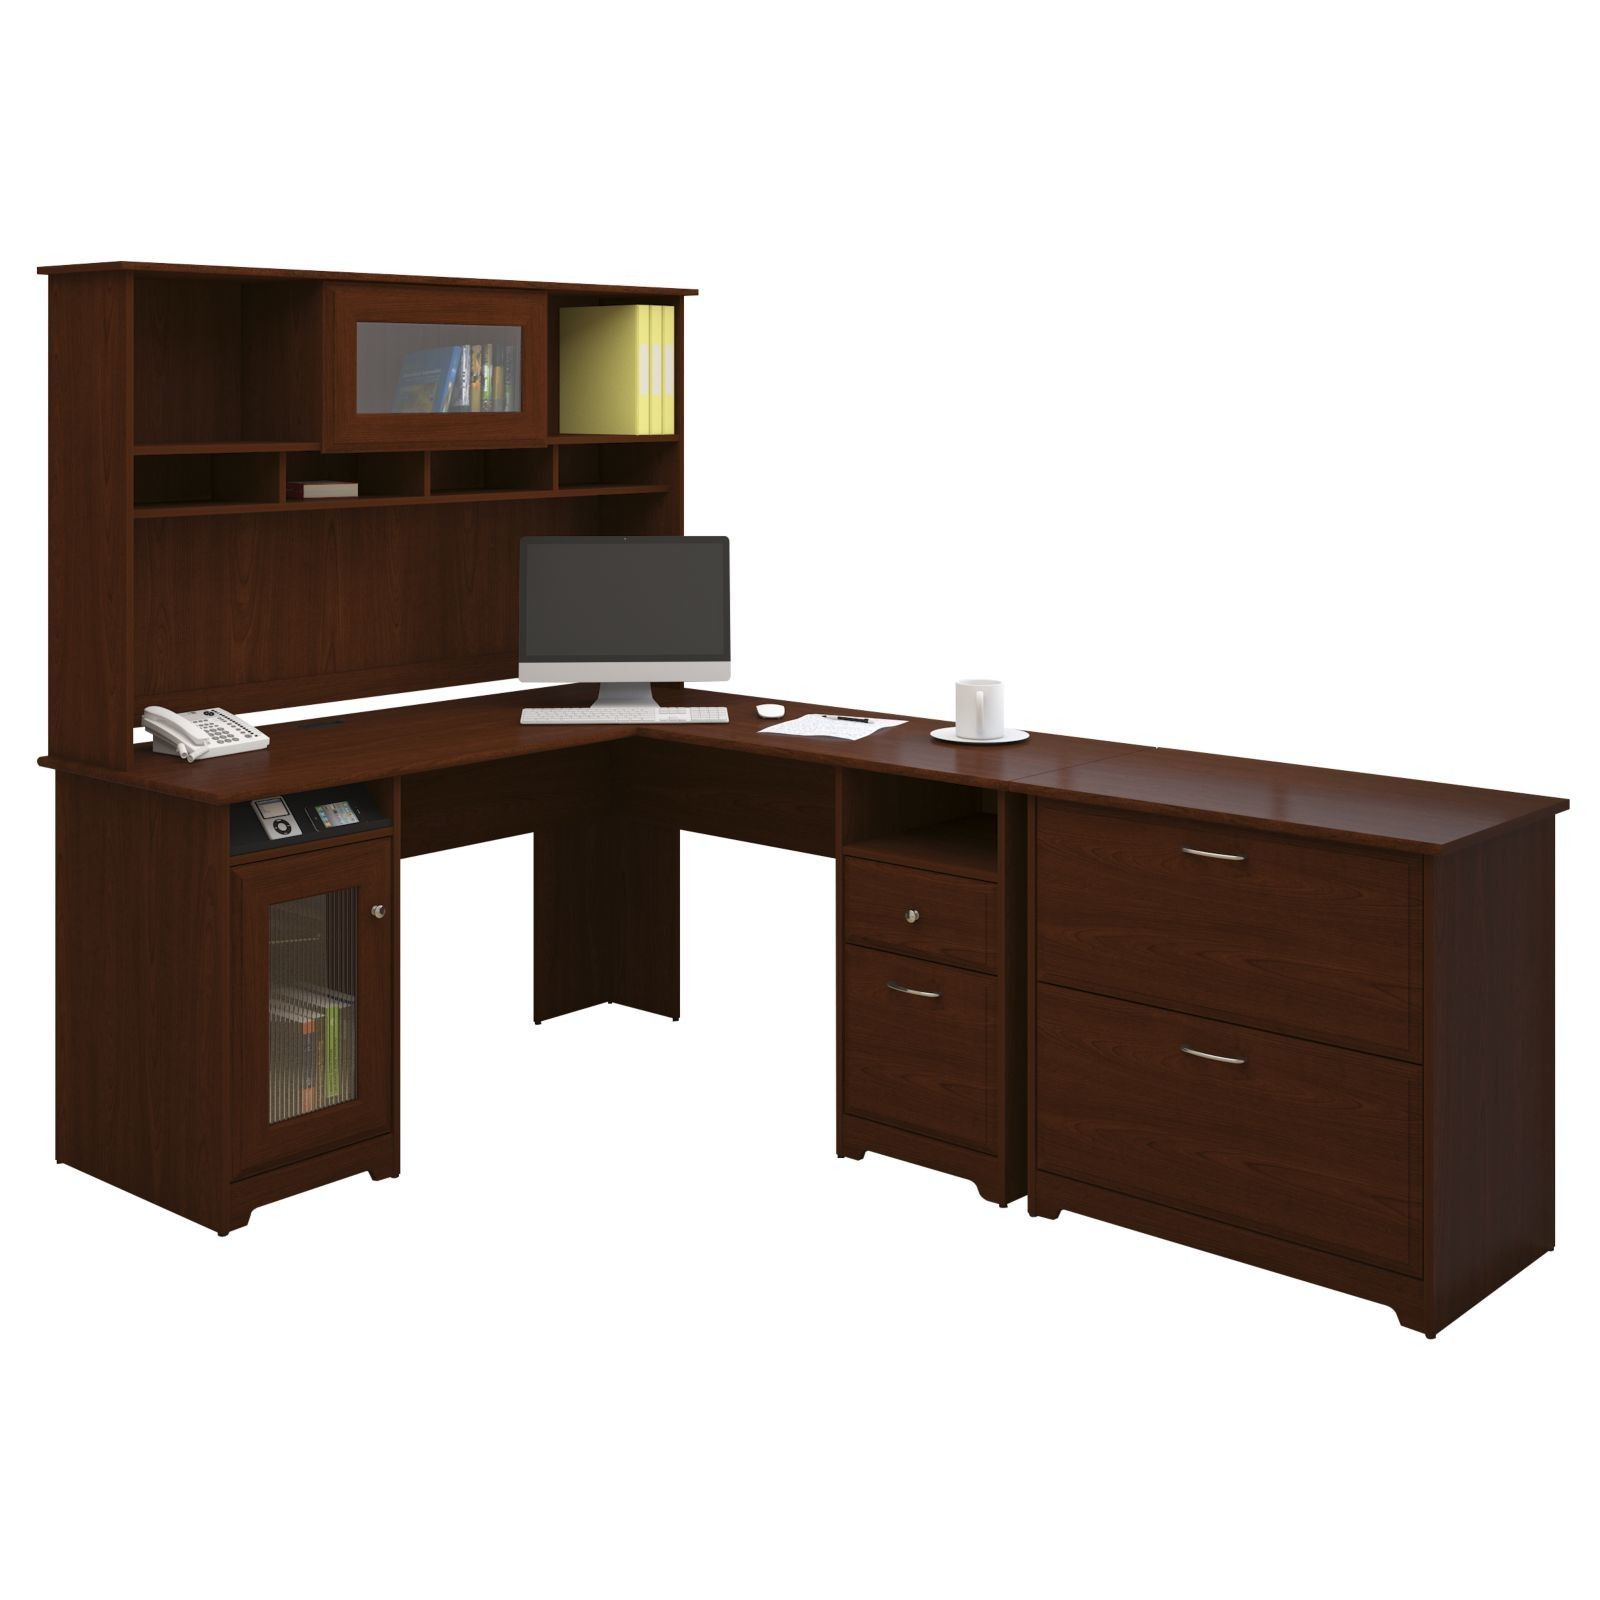 aoqvkkd somerset make blogbeen the how shaped hutch l computer desk most of to with bush an